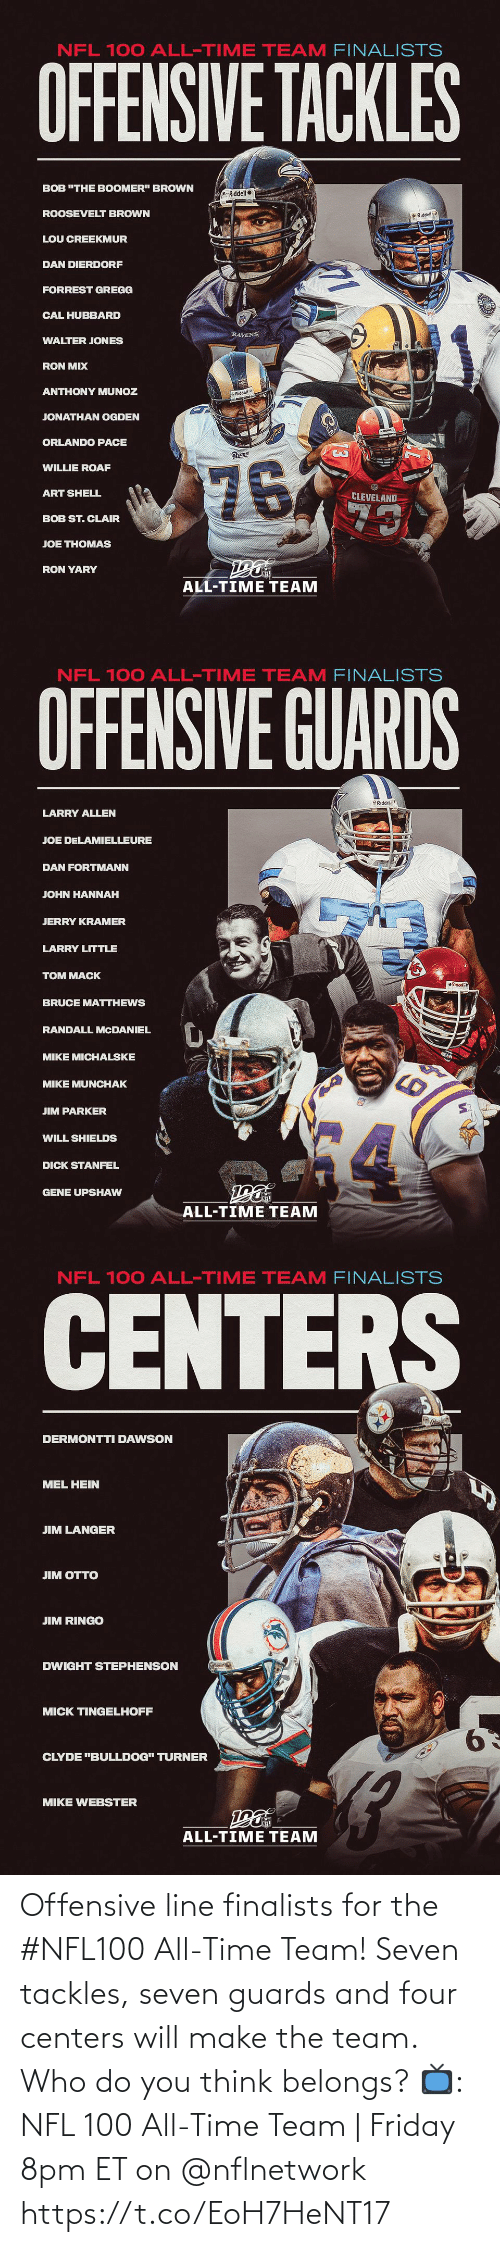 "jones: NFL 100 ALL-TIME TEAM FINALISTS  OFFENSIVE TACKLES  BOB ""THE BOOMER"" BROWN  Riddel  ROOSEVELT BROWN  O Riddell  LOU CREEKMUR  DAN DIERDORF  FORREST GREGG  CAL HUBBARD  RAVENS  WALTER JONES  RON MIX  ANTHONY MUNOZ  Riddell  JONATHAN OGDEN  ORLANDO PACE  Rams  76  WILLIE ROAF  ART SHELL  CLEVELAND  73  BOB ST. CLAIR  JOE THOMAS  RON YARY  ALL-TIME TEAM   NFL 100 ALL-TIME TEAM FINALISTS  OFFENSIVE GUARDS  Riddel  LARRY ALLEN  JOE DELAMIELLEURE  DAN FORTMANN  JOHN HANNAH  JERRY KRAMER  LARRY LITTLE  TOM MACK  BRUCE MATTHEWS  RANDALL MCDANIEL  MIKE MICHALSKE  MIKE MUNCHAK  JIM PARKER  WILL SHIELDS  DICK STANFEL  GENE UPSHAW  ALL-TIME TEAM   NFL 100 ALL-TIME TEAM FINALISTS  CENTERS  DERMONTTI DAWSON  MEL HEIN  JIM LANGER  ЛM OТTO  JIM RINGO  DWIGHT STEPHENSON  MICK TINGELHOFF  9.  CLYDE ""BULLDOG"" TURNER  MIKE WEBSTER  ALL-TIME TEAM Offensive line finalists for the #NFL100 All-Time Team!  Seven tackles, seven guards and four centers will make the team. Who do you think belongs?  📺: NFL 100 All-Time Team 